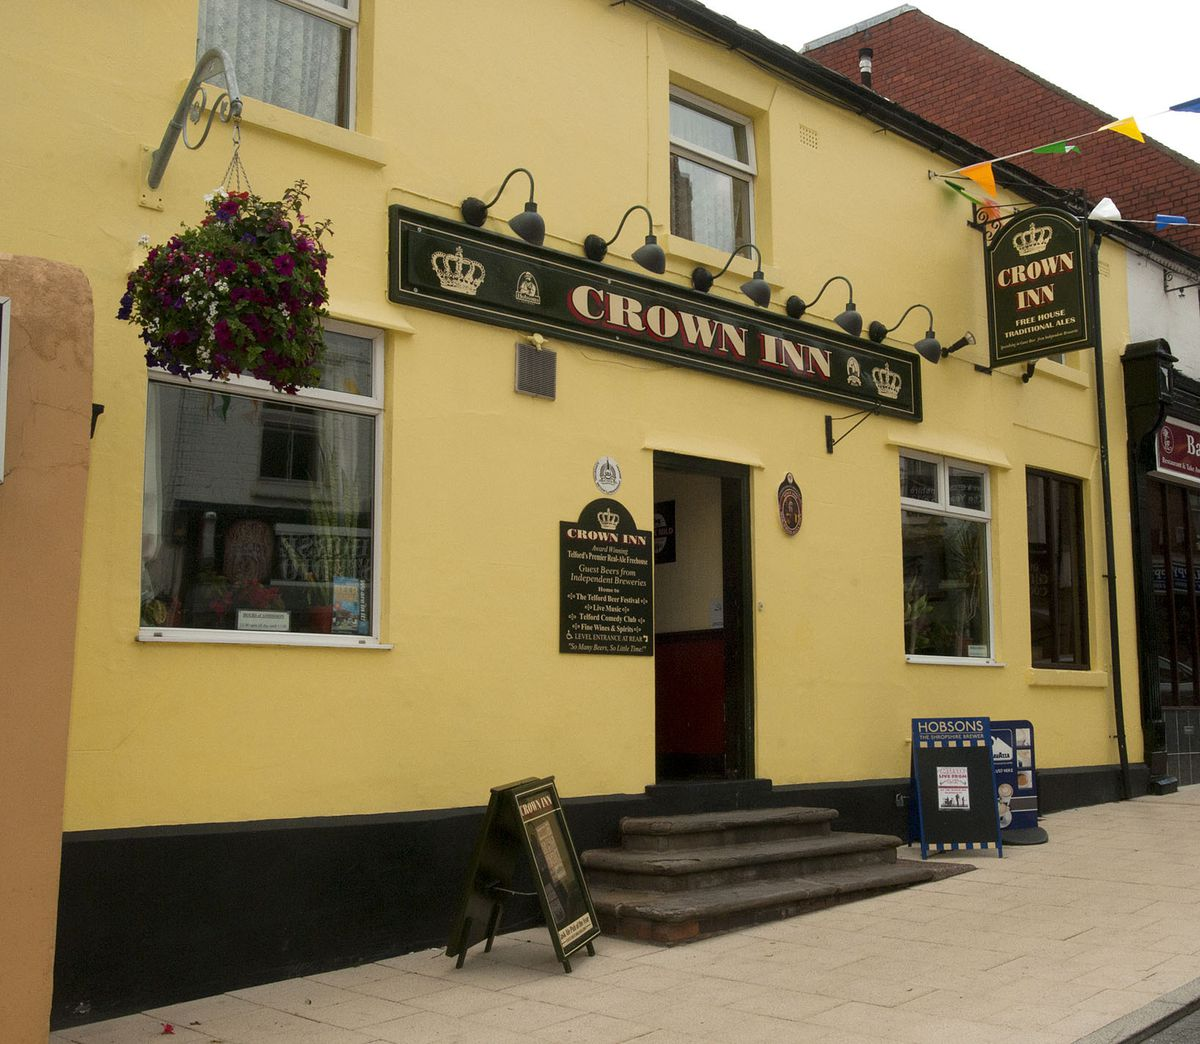 The Crown Inn at Oakengates keeps its place in the list